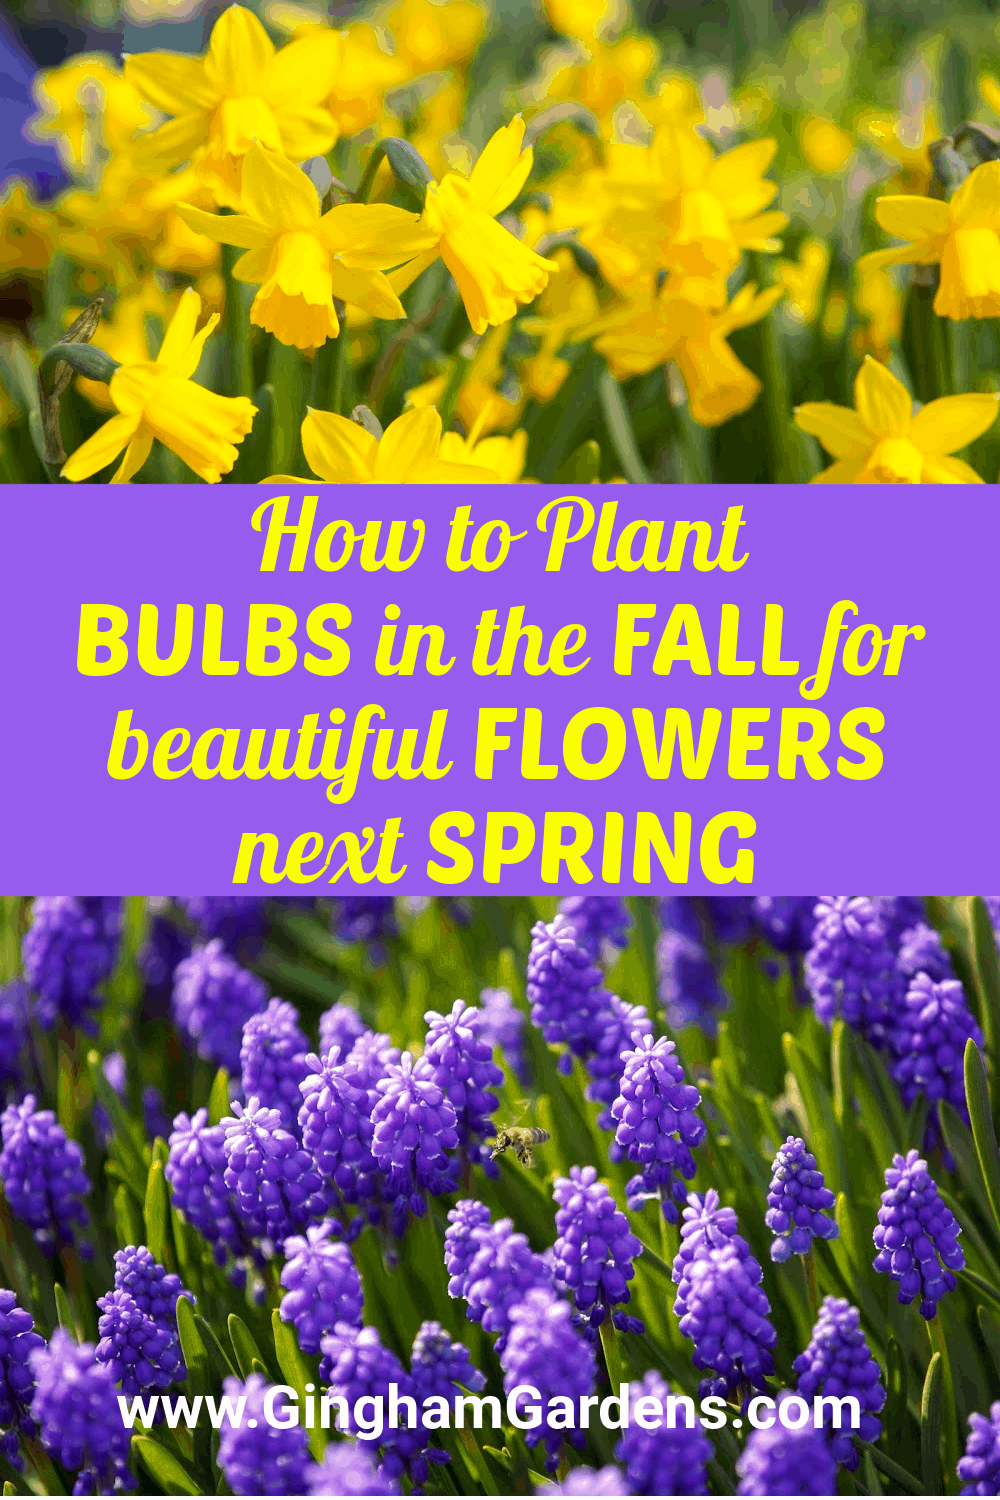 Images of Spring Flowers with text overlay - How to Plant Bulbs in the Fall for beautiful flowers next spring